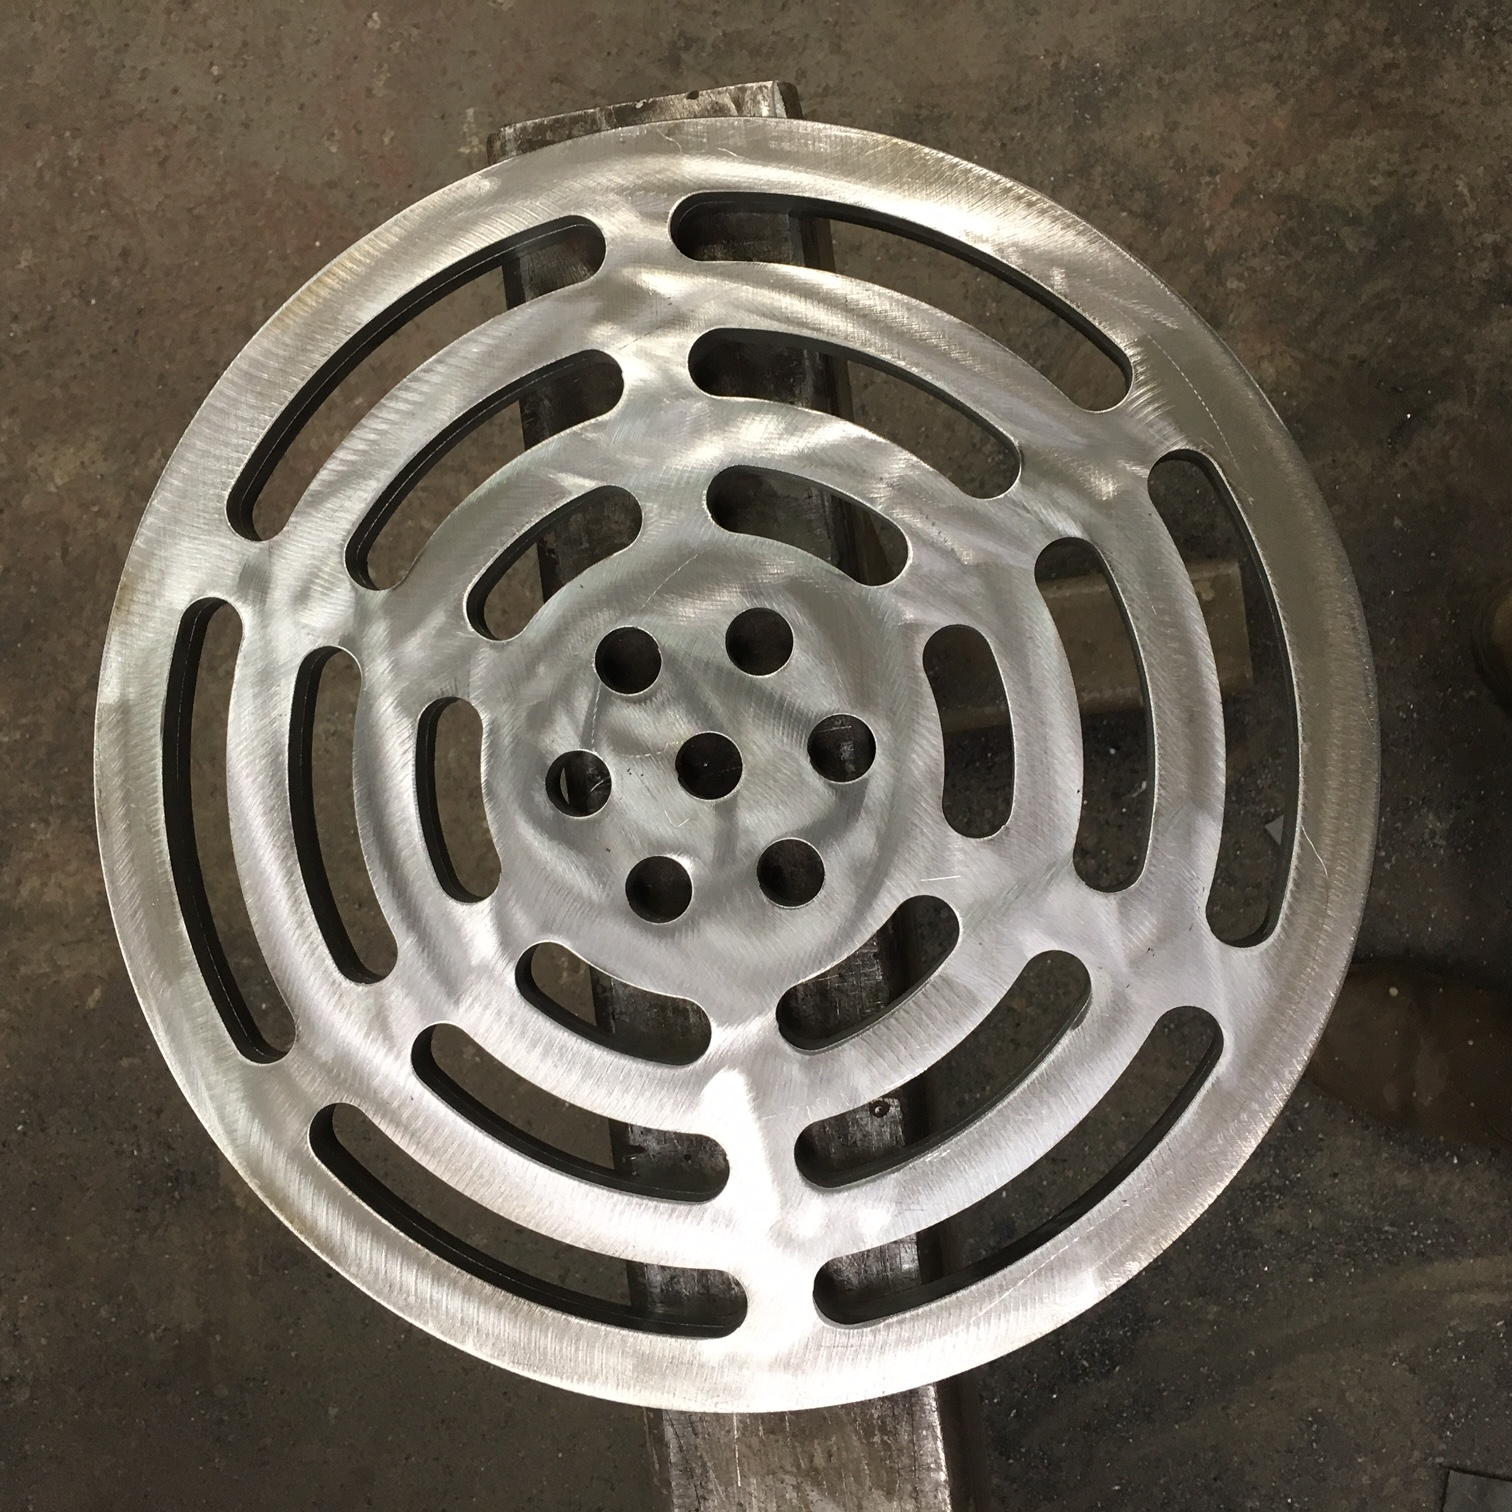 Manhole cover ready to be galvanised